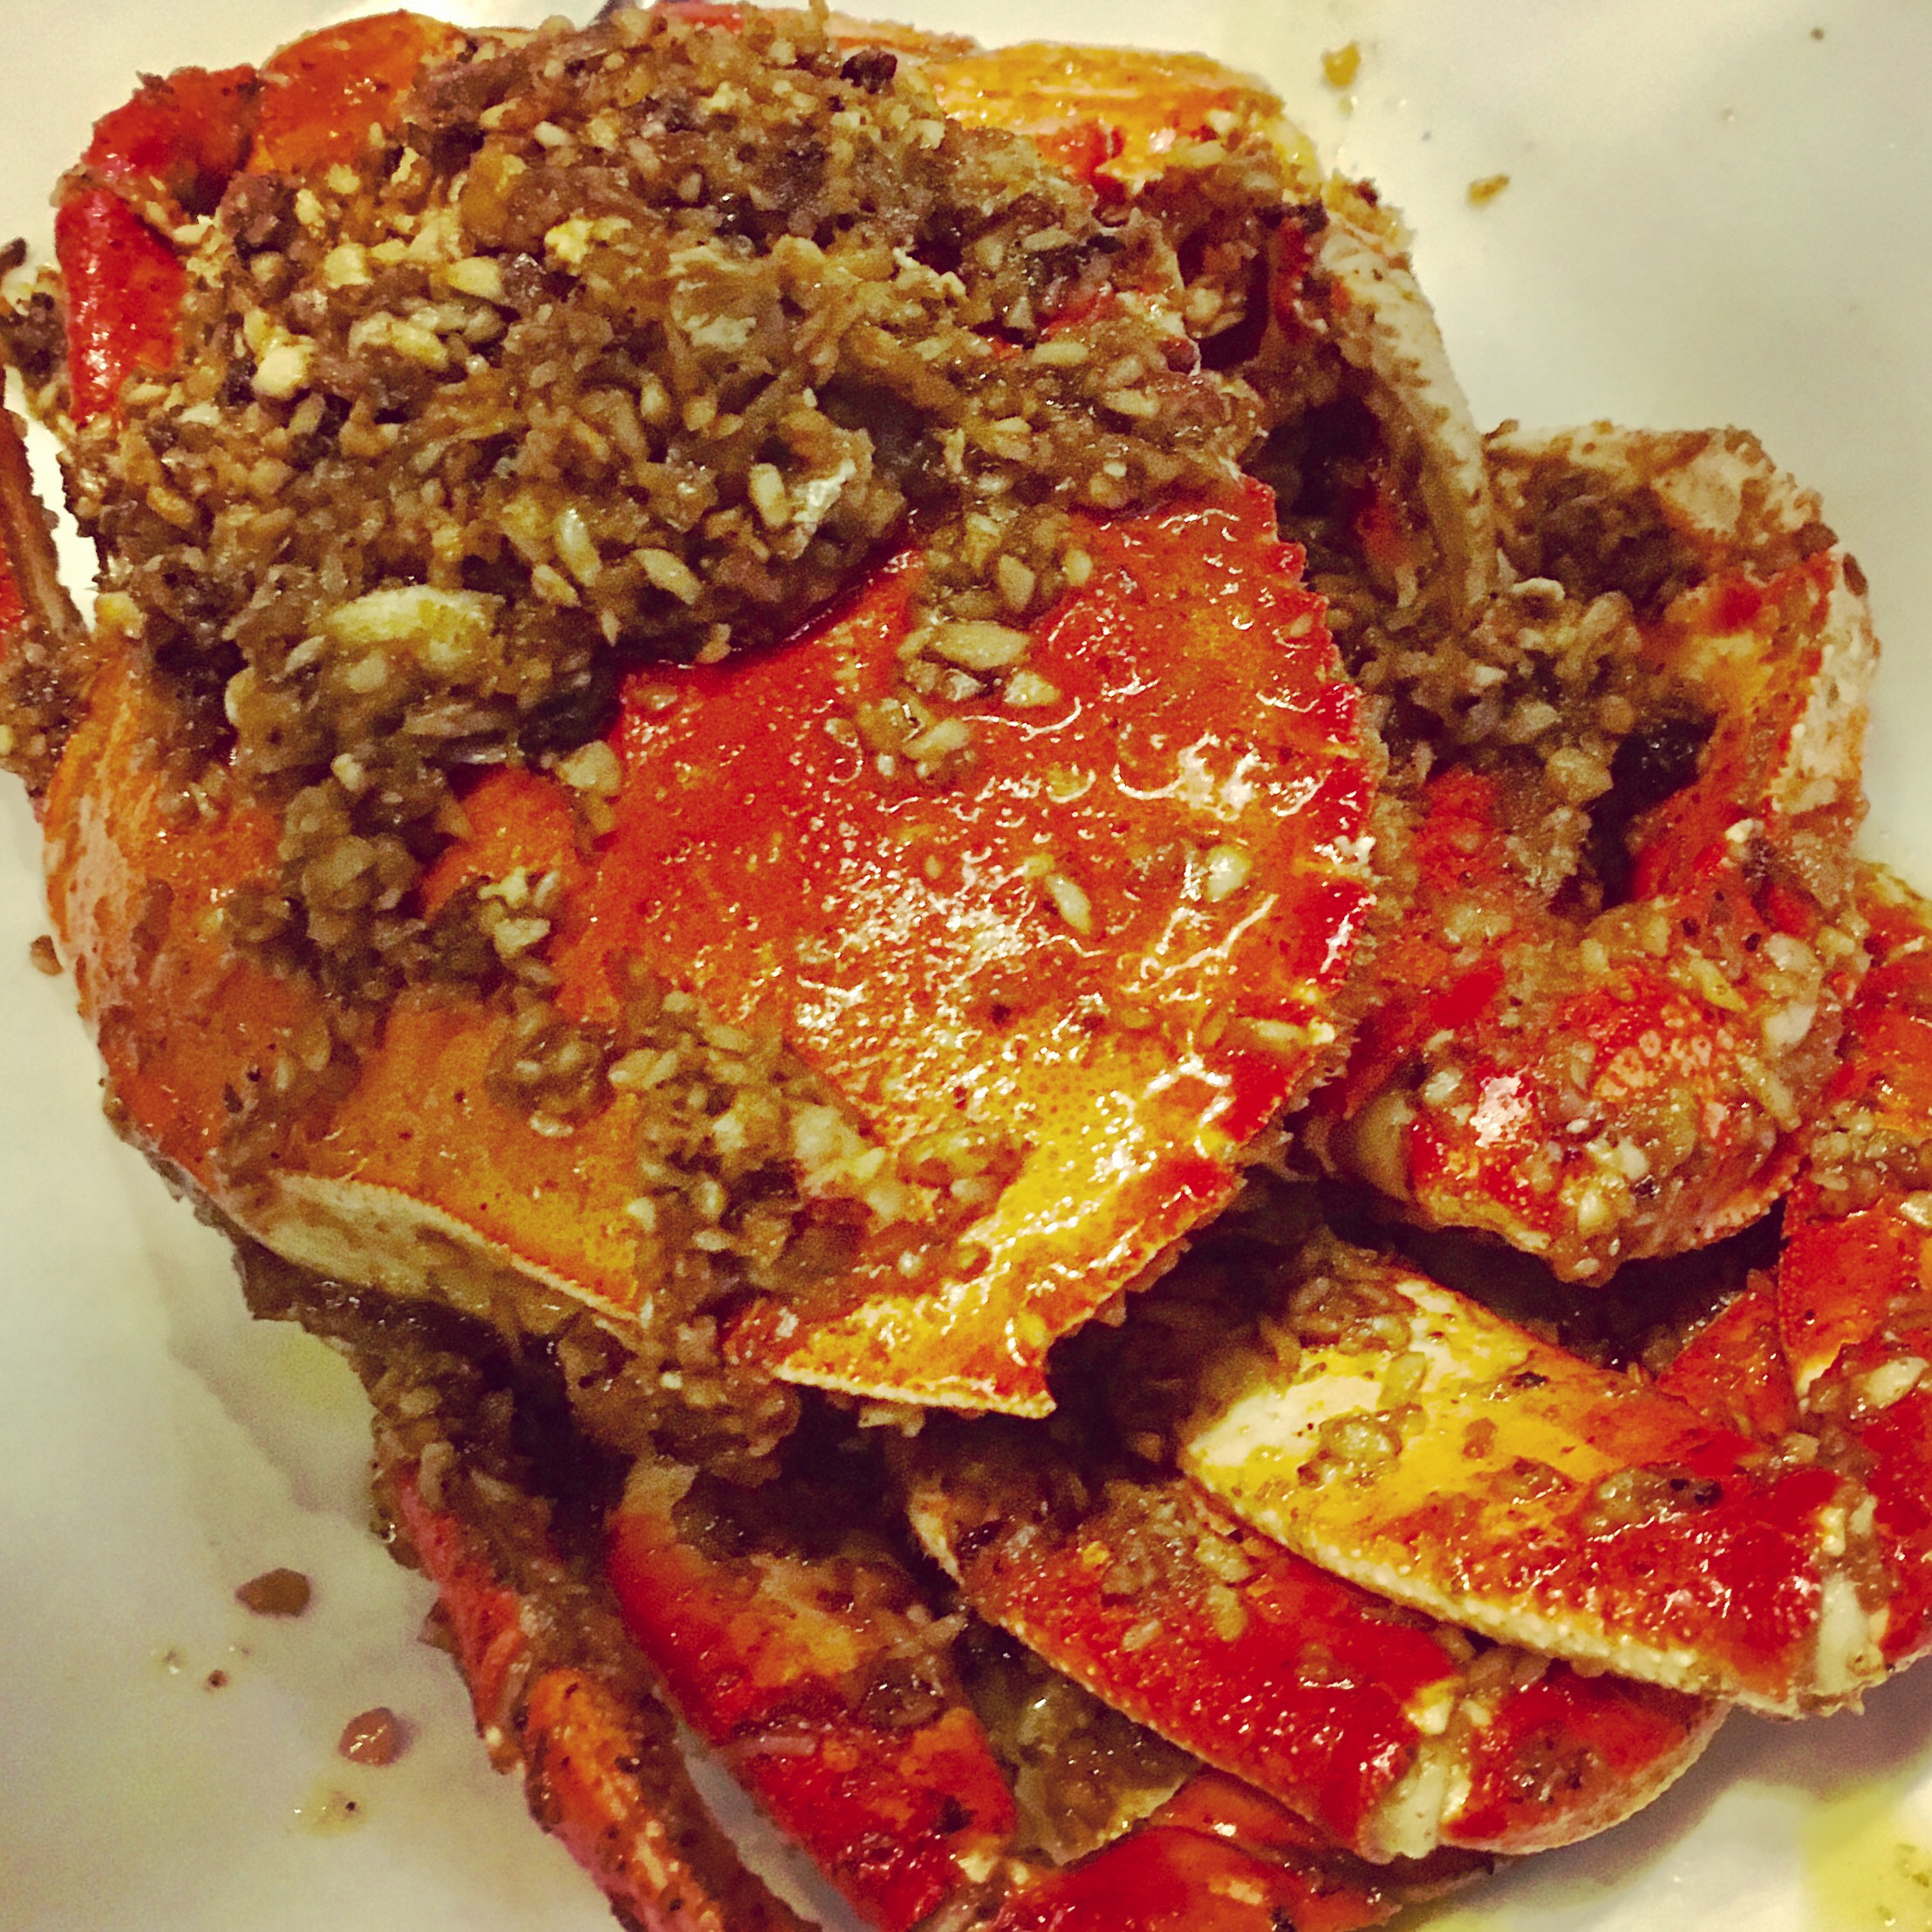 Drunken Crab with Garlic Butter